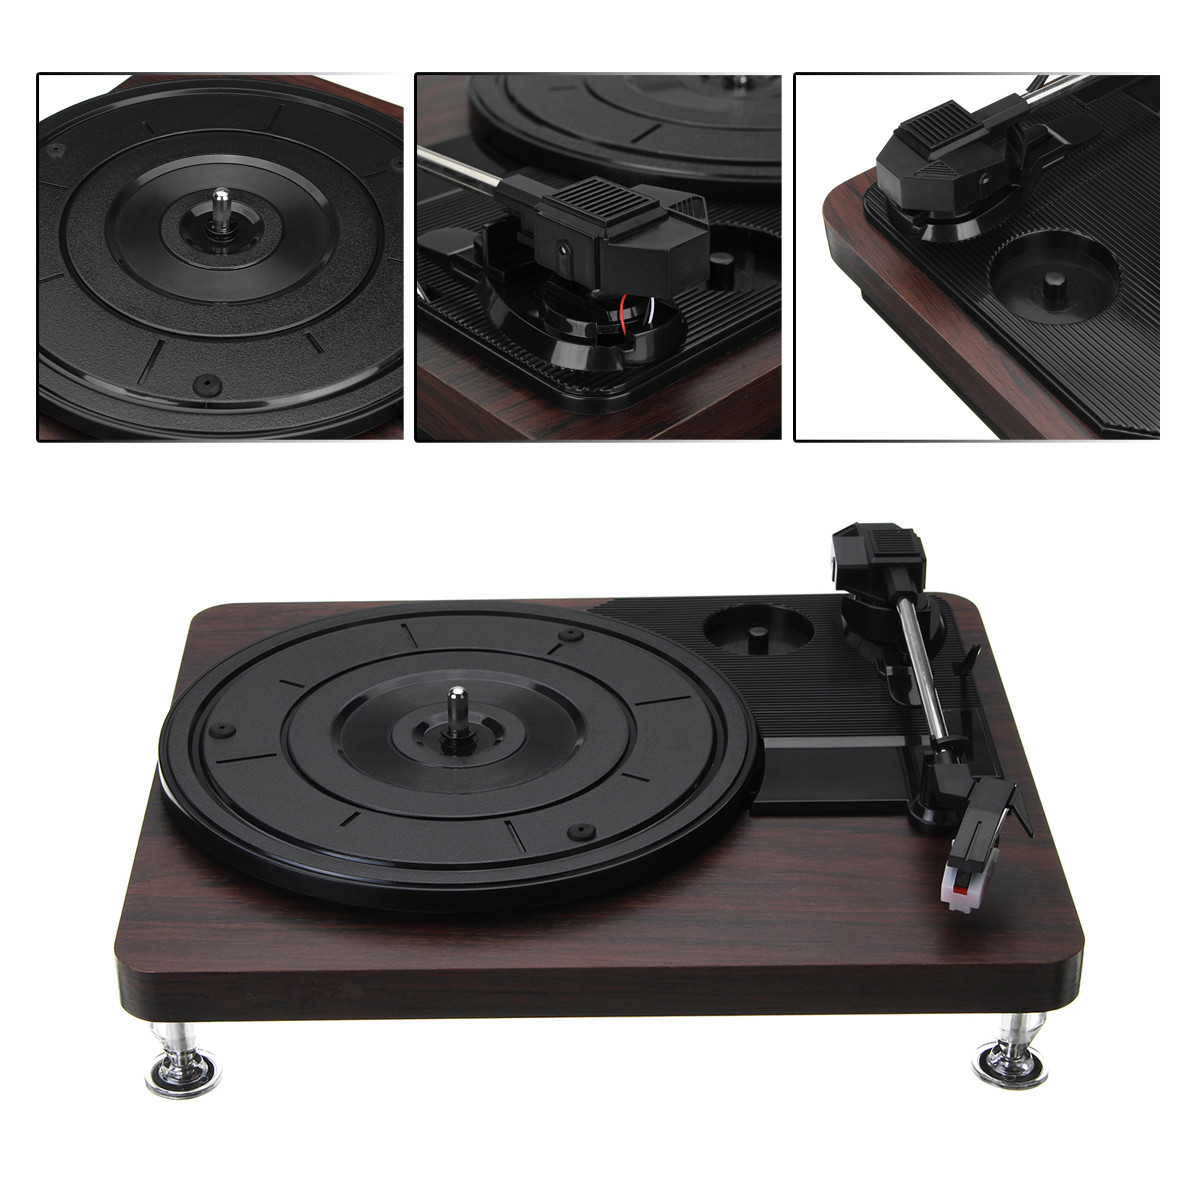 Tragbares Audio & Video Unterhaltungselektronik 33 Rpm Kunststoff Rekord Retro Player Portable Audio Grammophon Plattenspieler Disc Vinyl Audio Rca R/l 3,5mm Ausgang Out Usb Dc 5 V